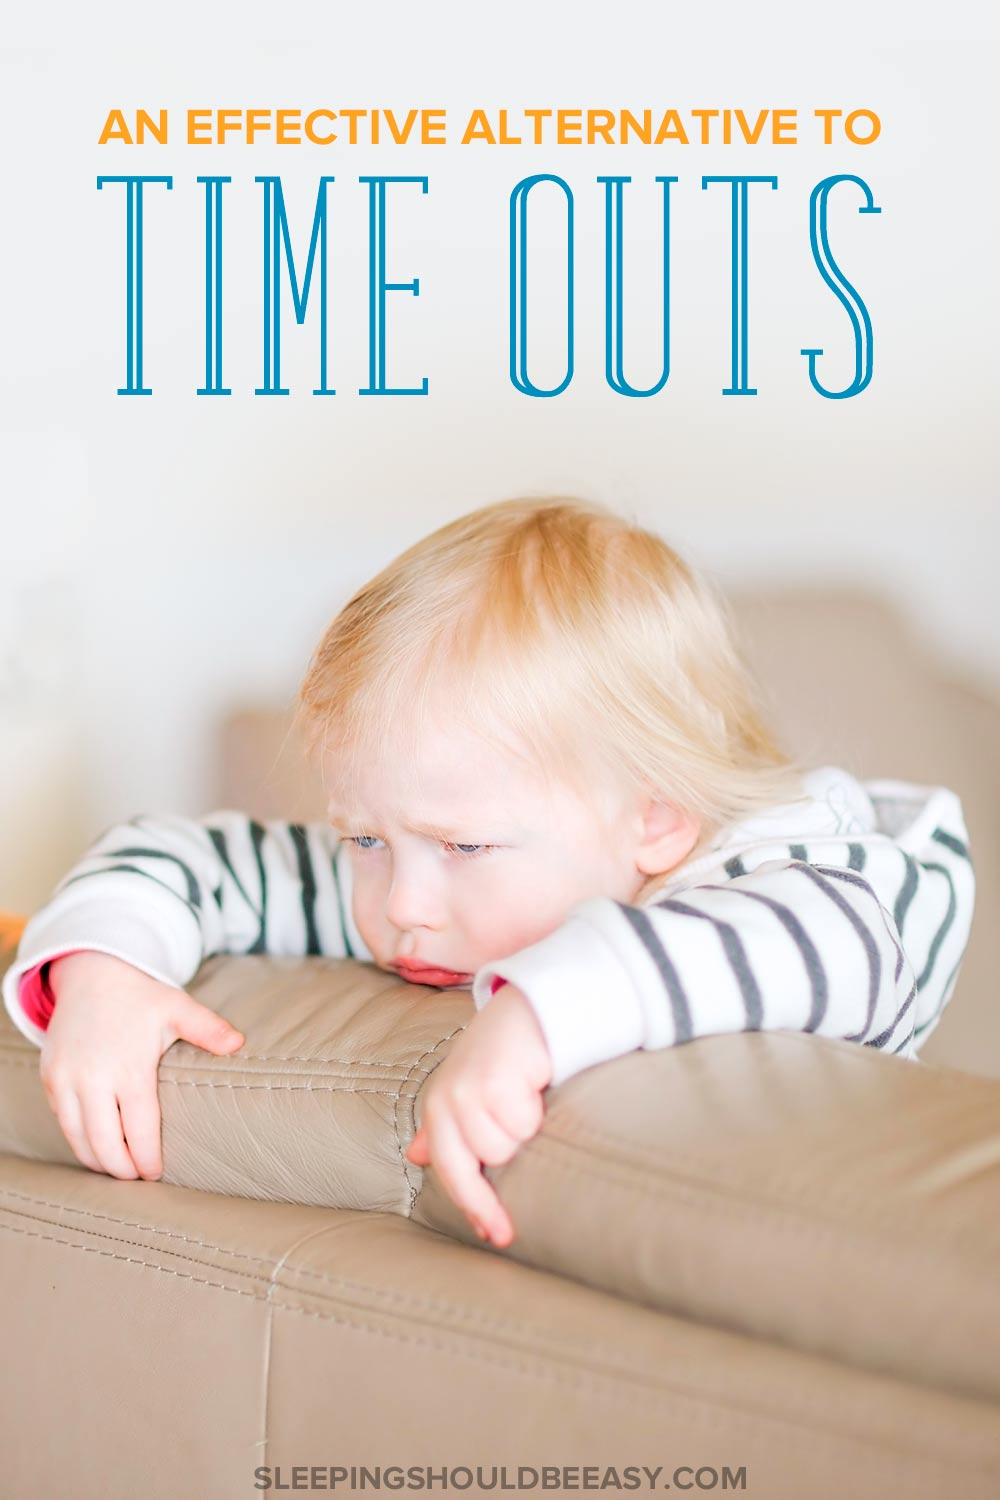 Looking for a better alternative to timeout? Putting your child in time out isn't effective and misses key learning moments. Try this alternative instead.